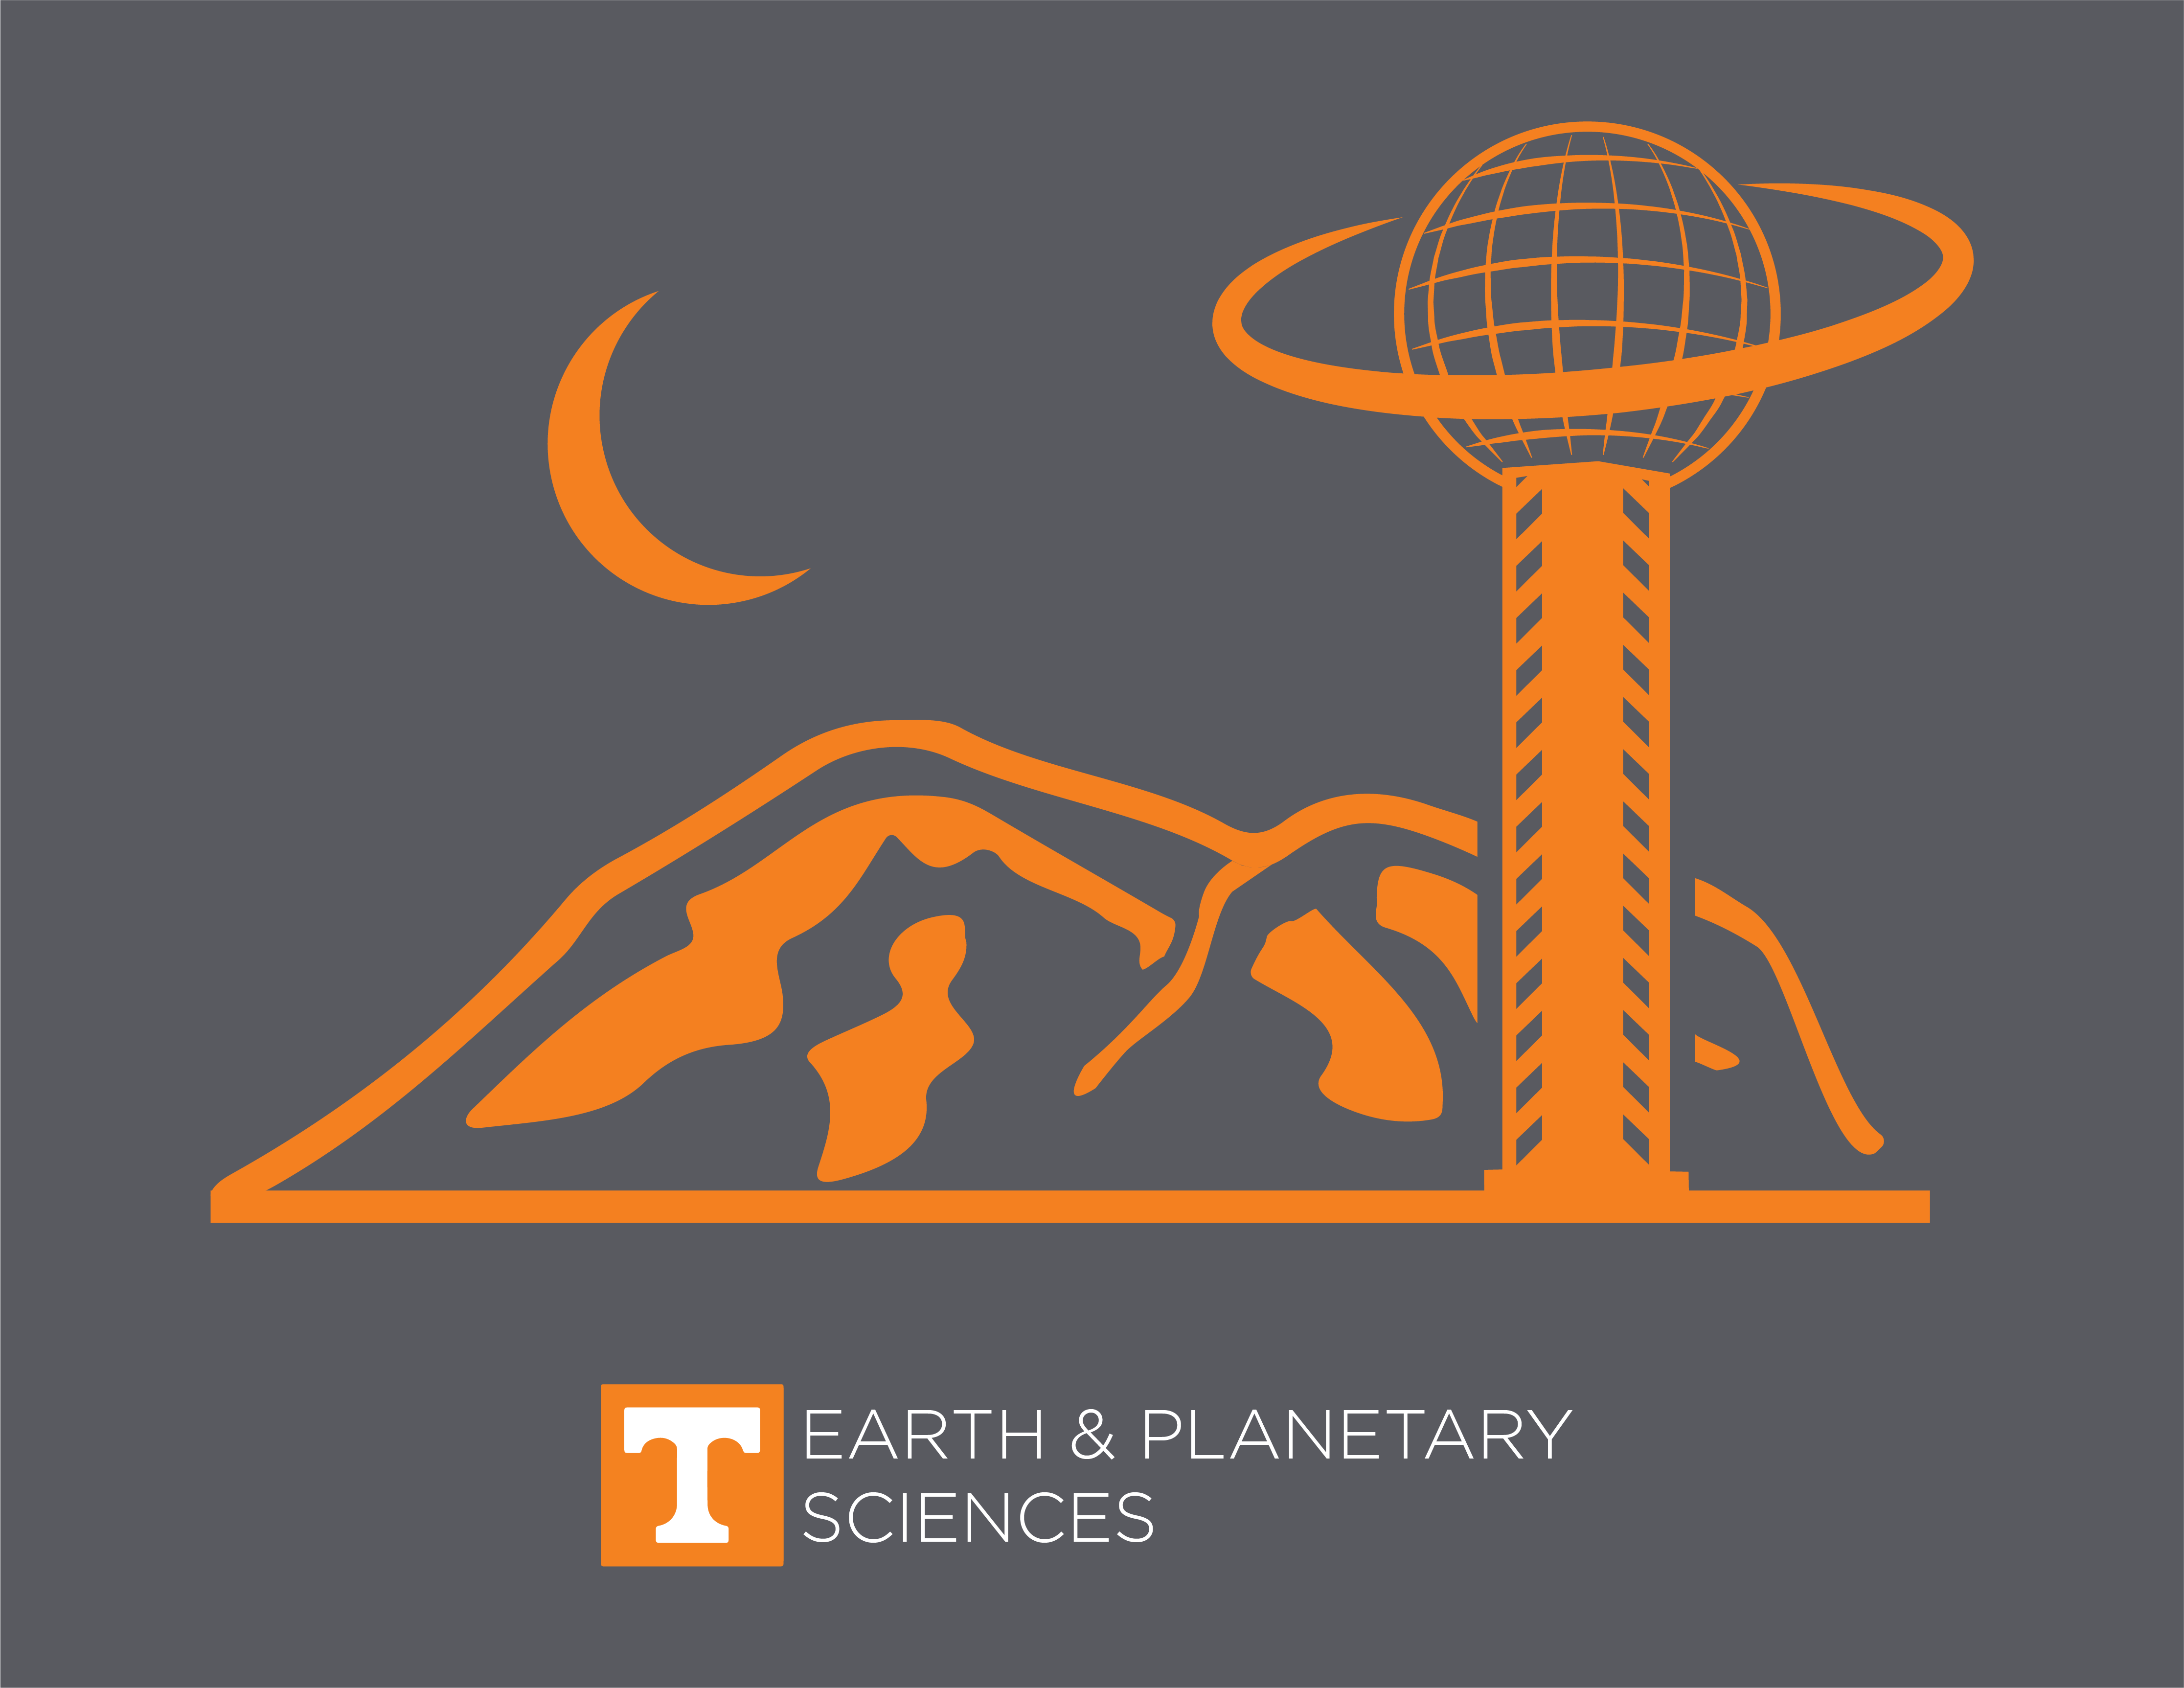 University of Tennessee Knoxville - Earth & Planetary Sciences